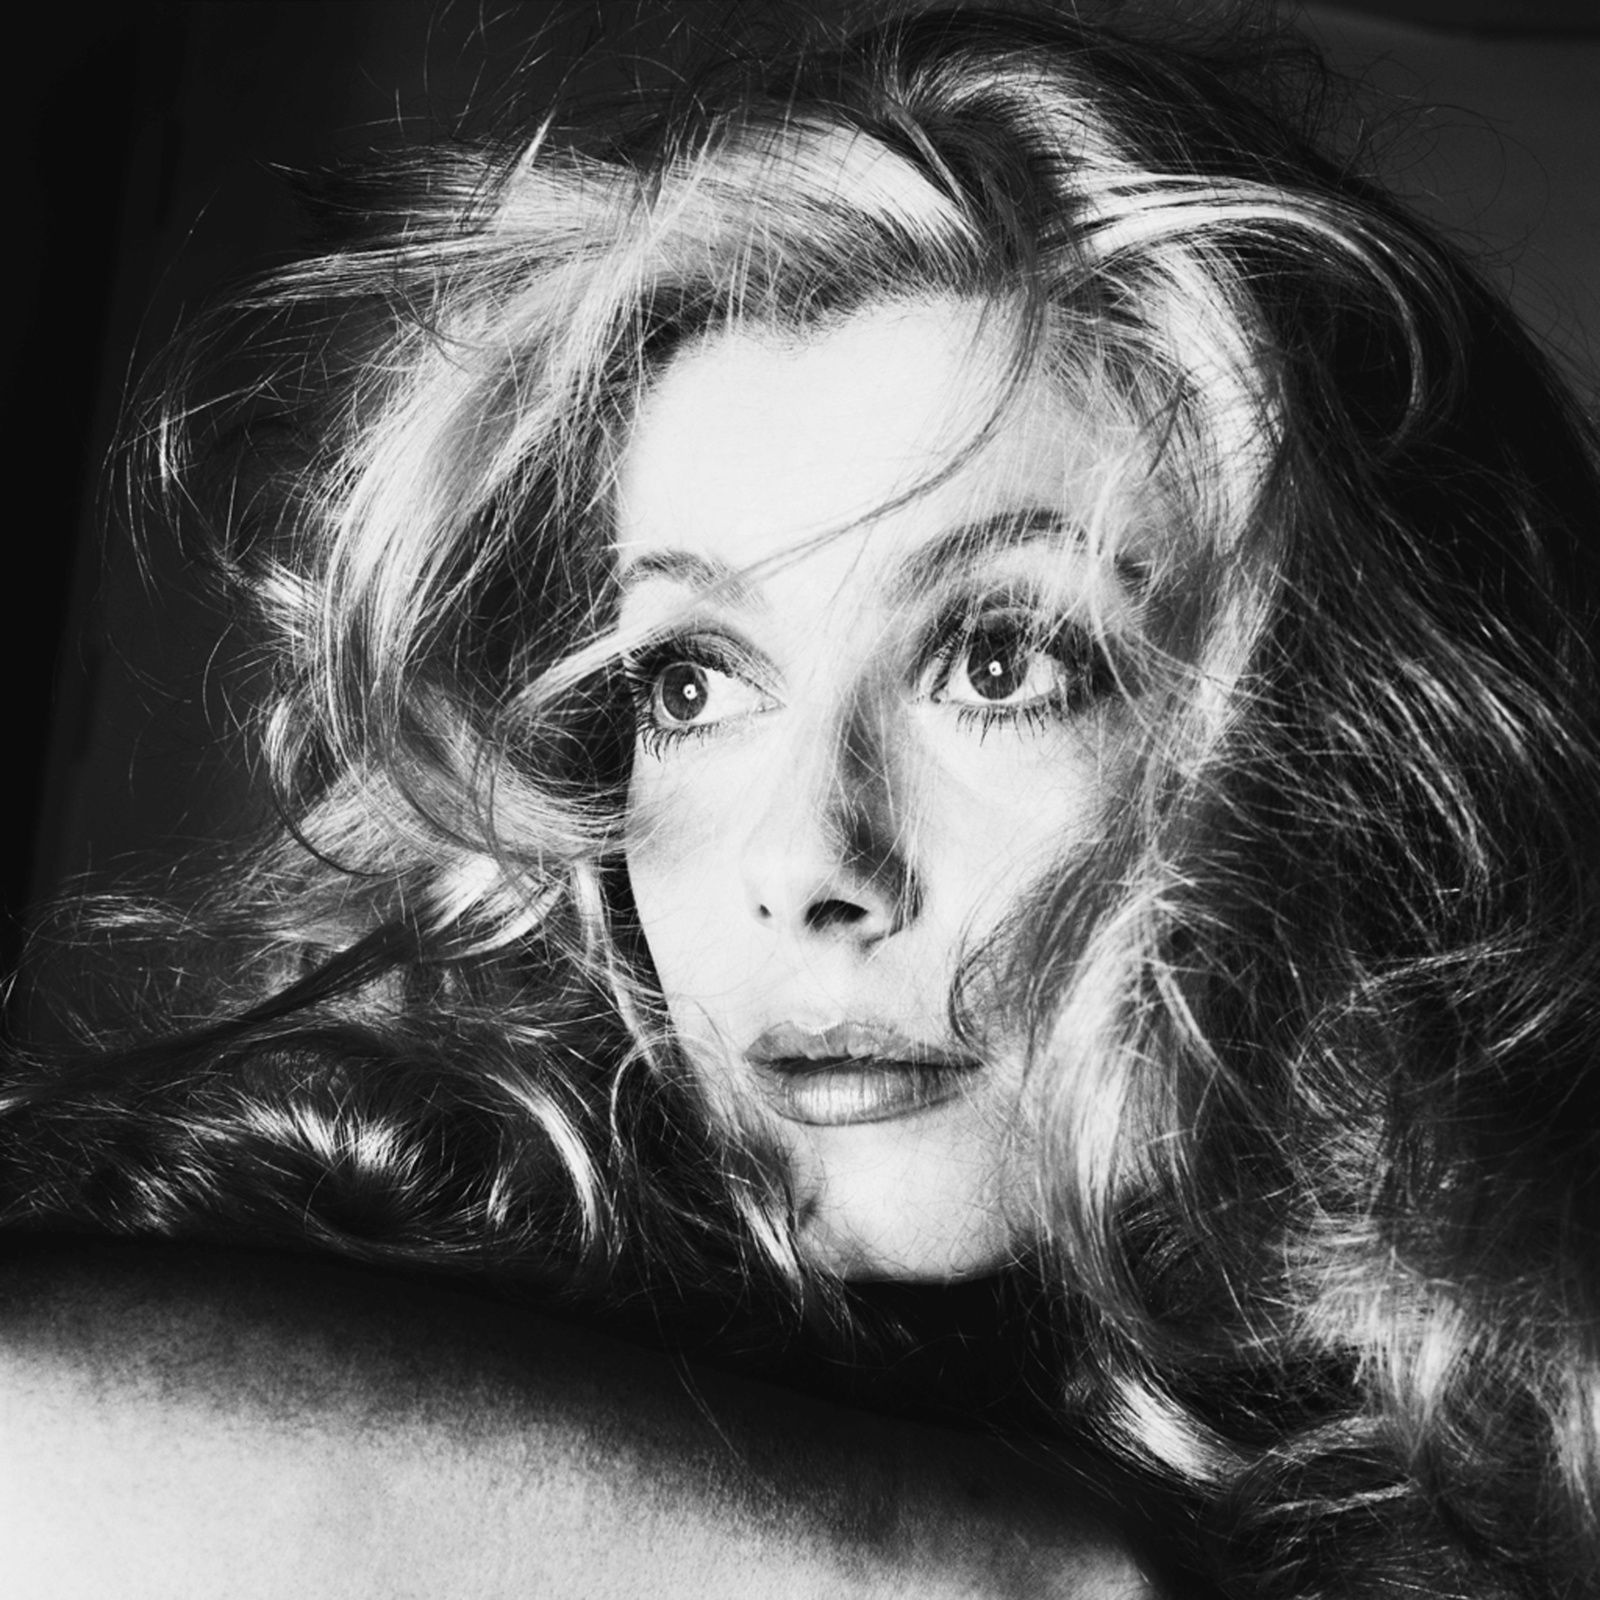 """Catherine DENEUVE, Los Angelès"", 1968 de Richard AVEDON - Courtesy Fondation Avedon"